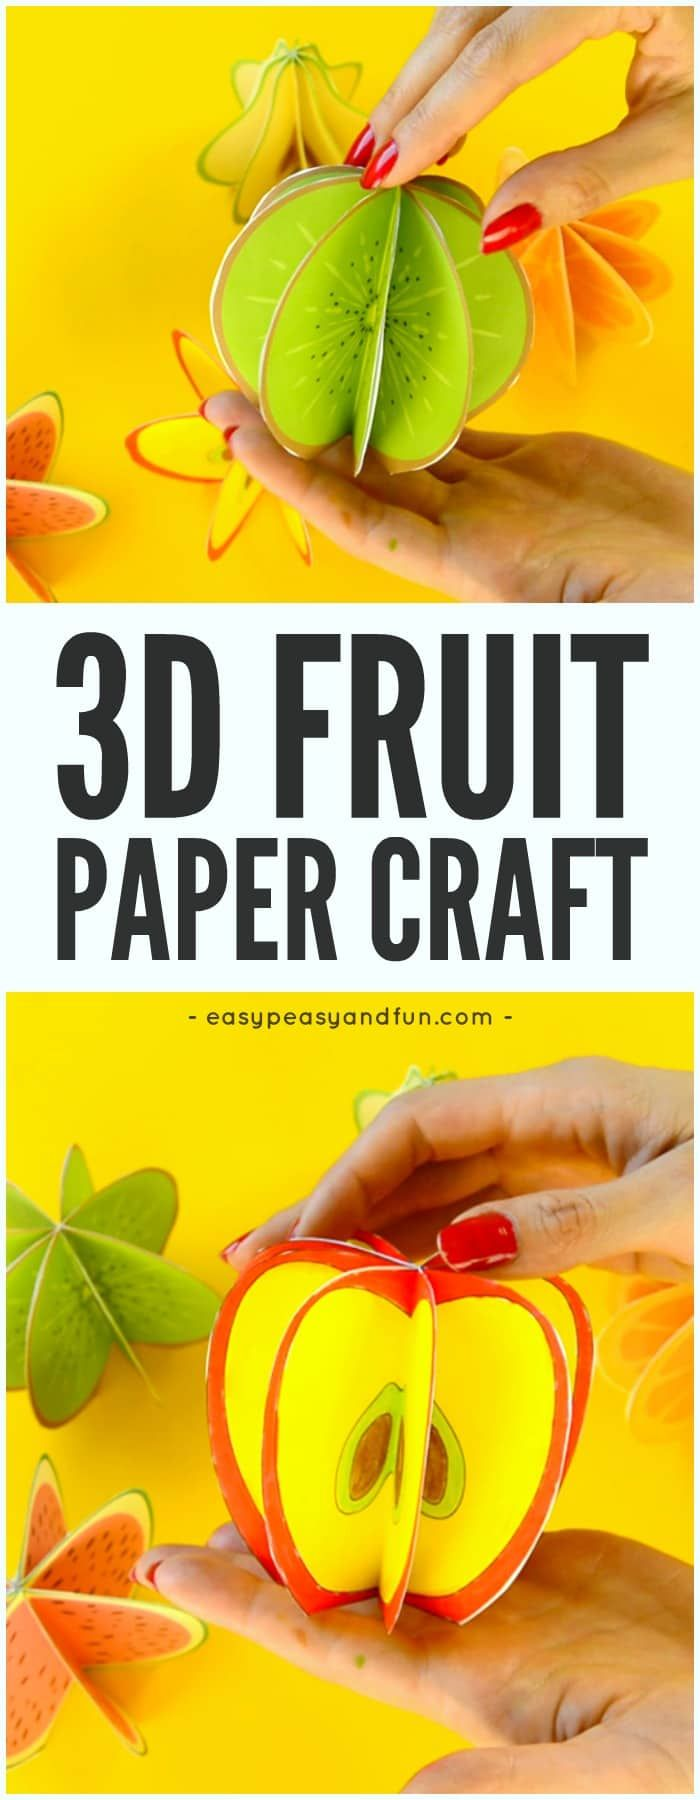 Printable Template 3D Paper Fruit Craft Idea